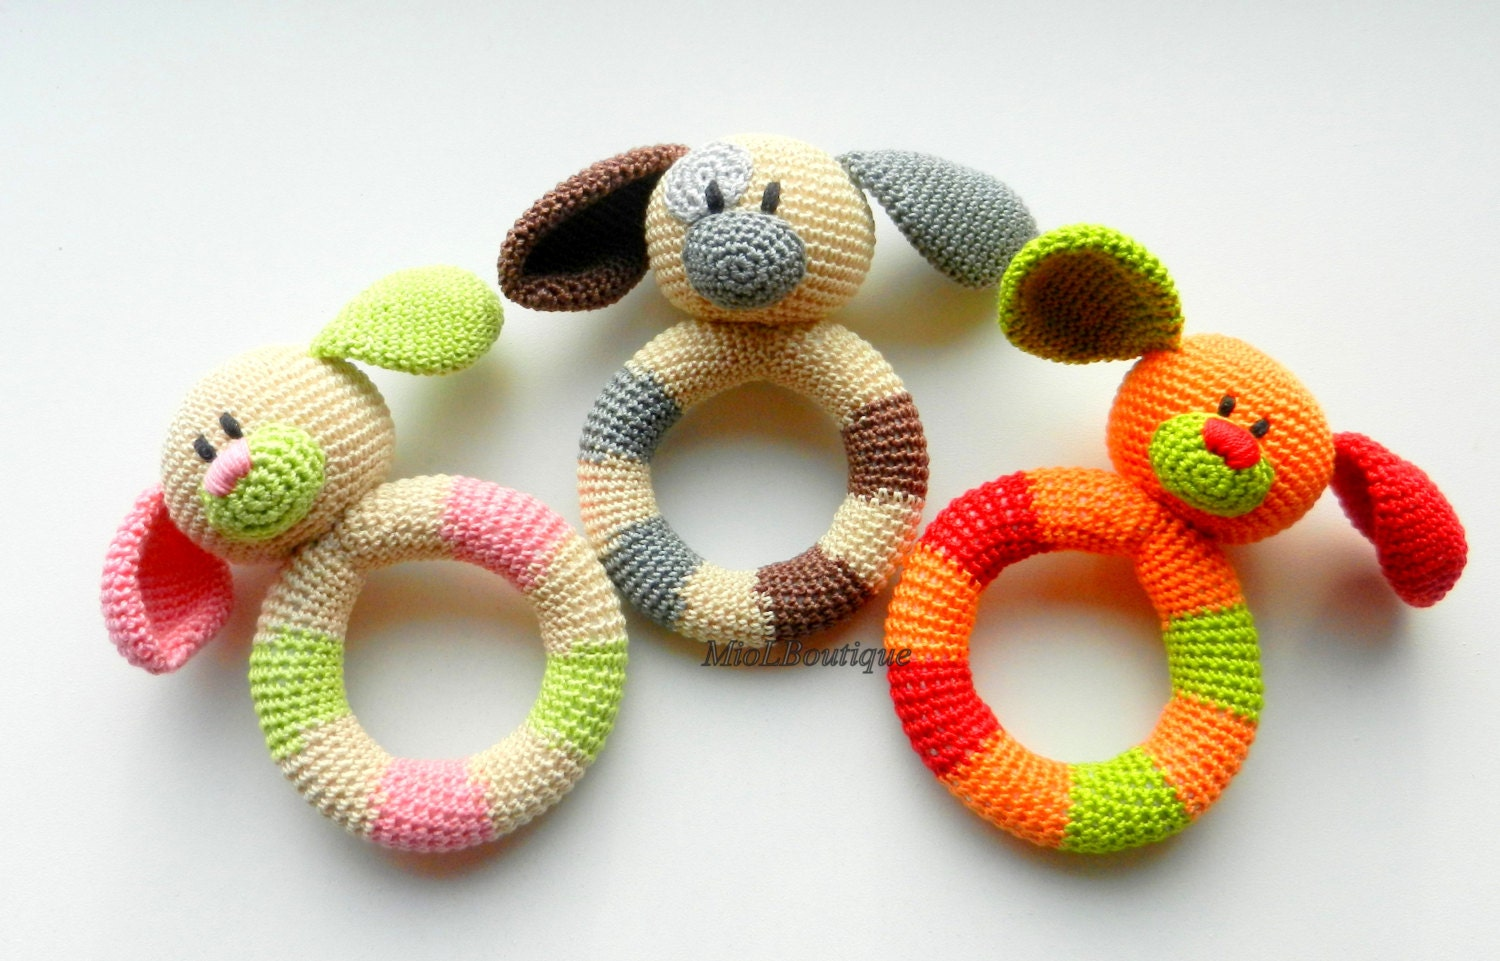 SALE Baby toy Rattle Teething baby toy Grasping Teething